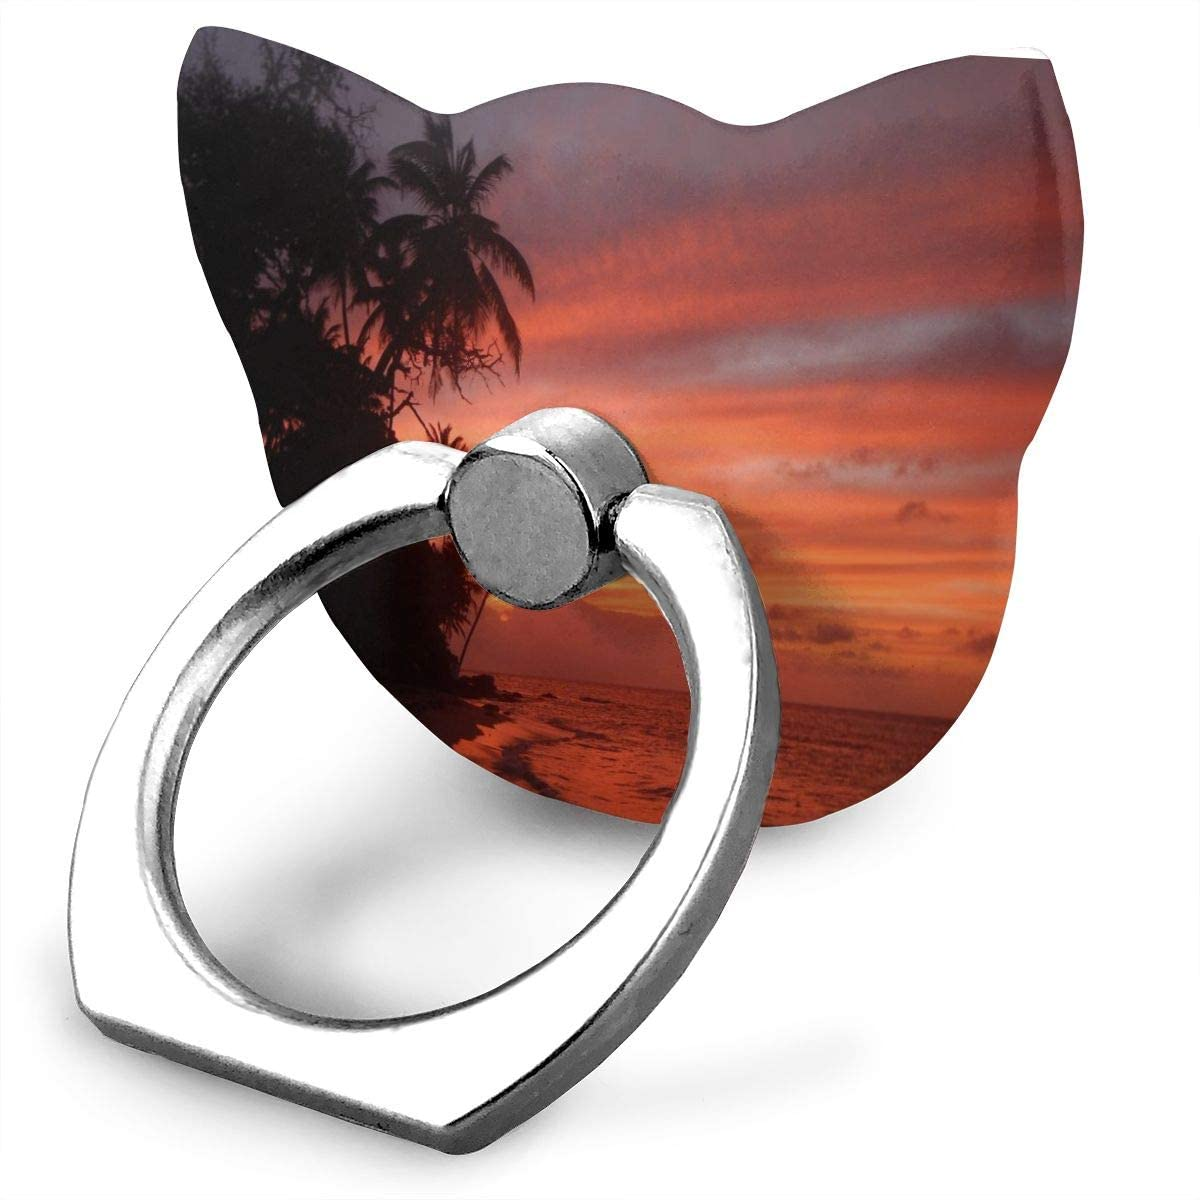 Cat Cell Phone Ring Holder, Ring Phone Holder Sunset On Island Cat Ring Holder for Cell Phone, Phone Grip Holder, Phone Ring Stand Finger Kickstand 360° Rotation Compatible with All Smartphones